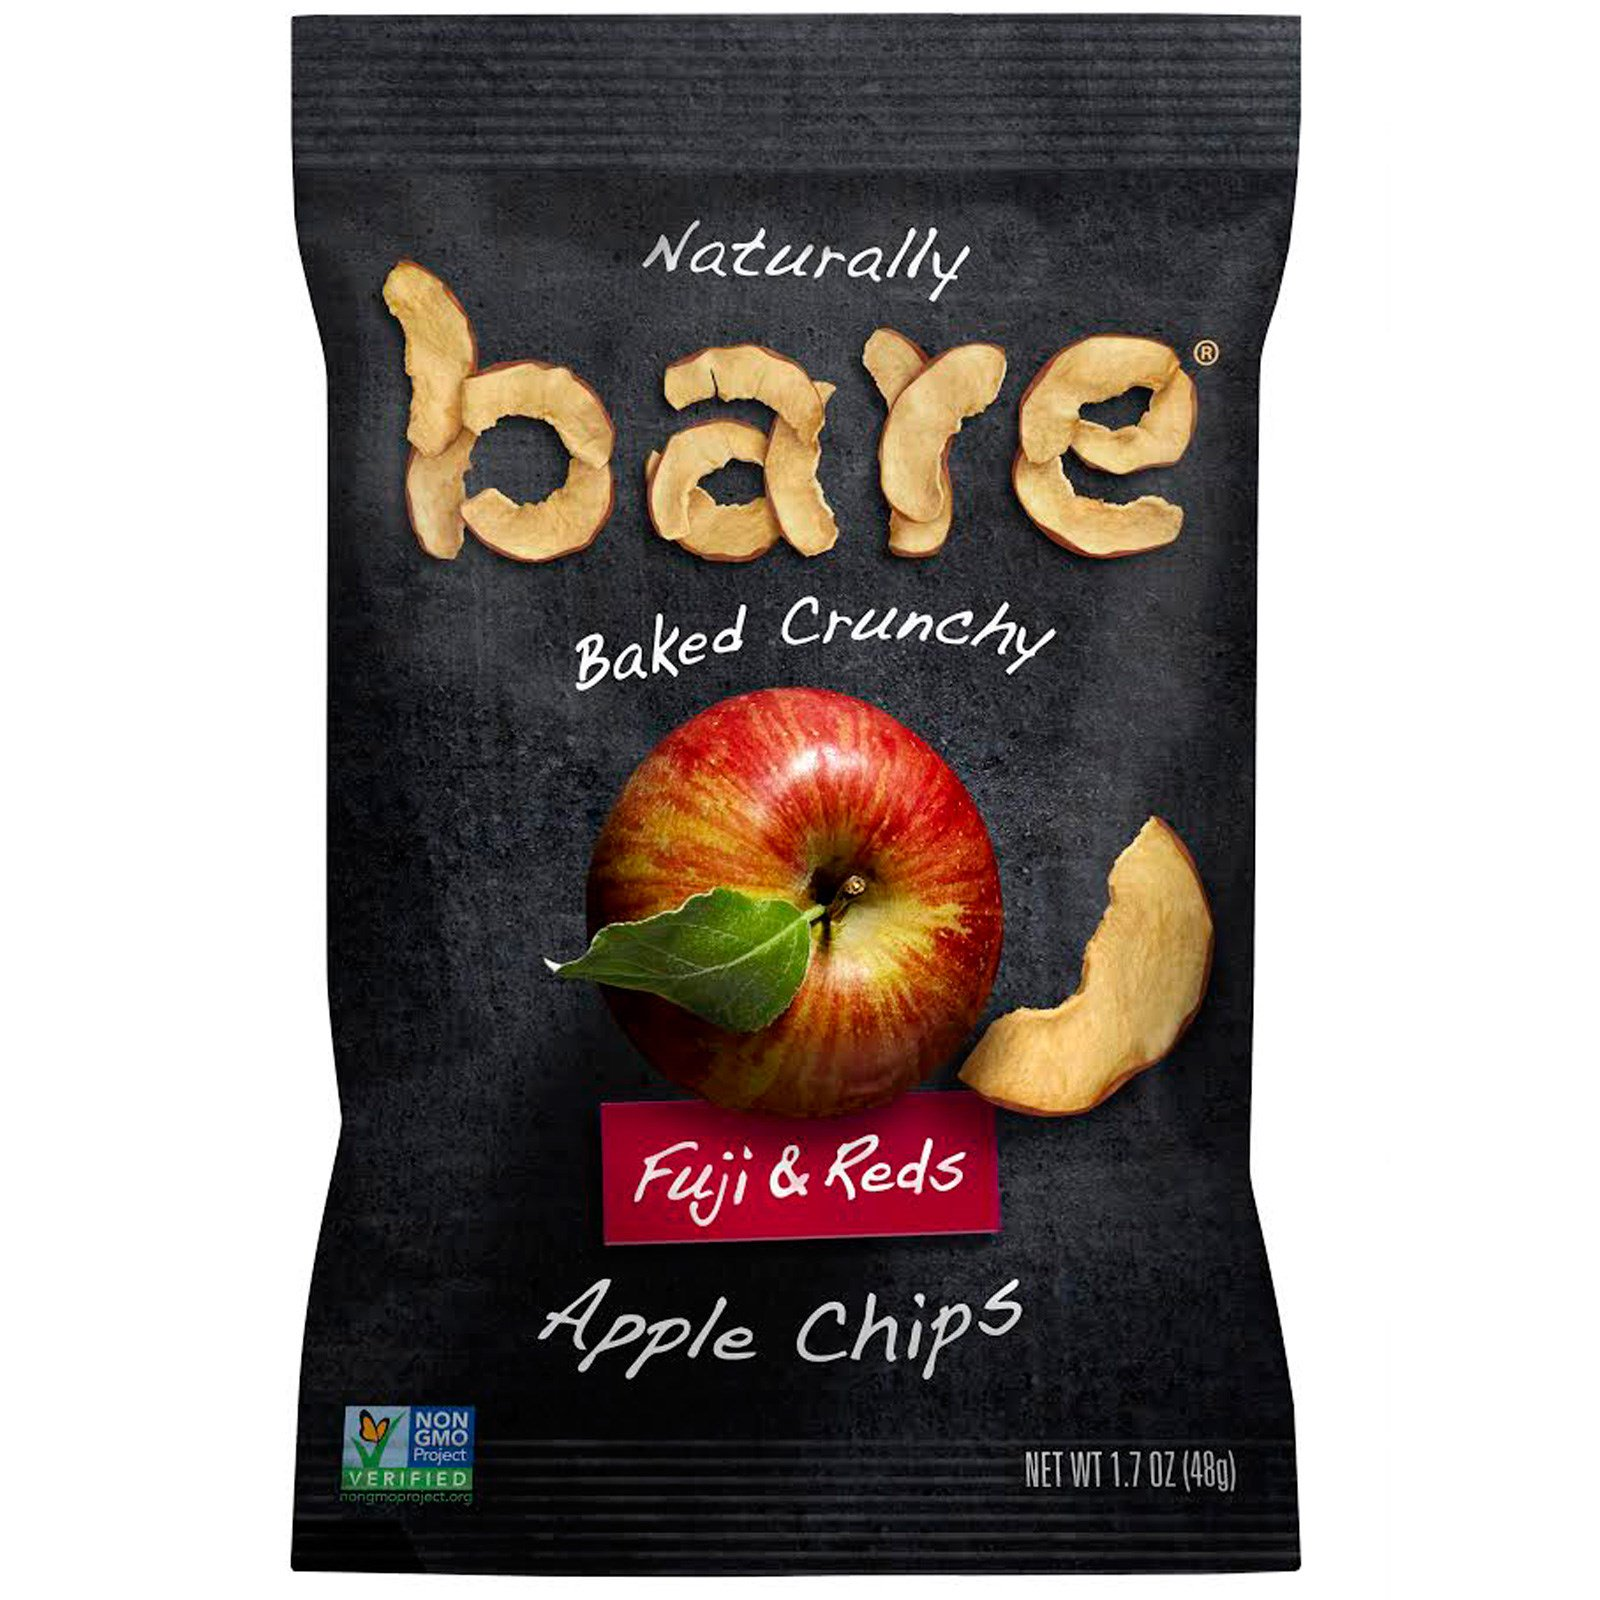 Bare Fruit, Naturally Baked Crunchy, Apple Chips, Fuji & Reds , 1.7 oz (48 g)